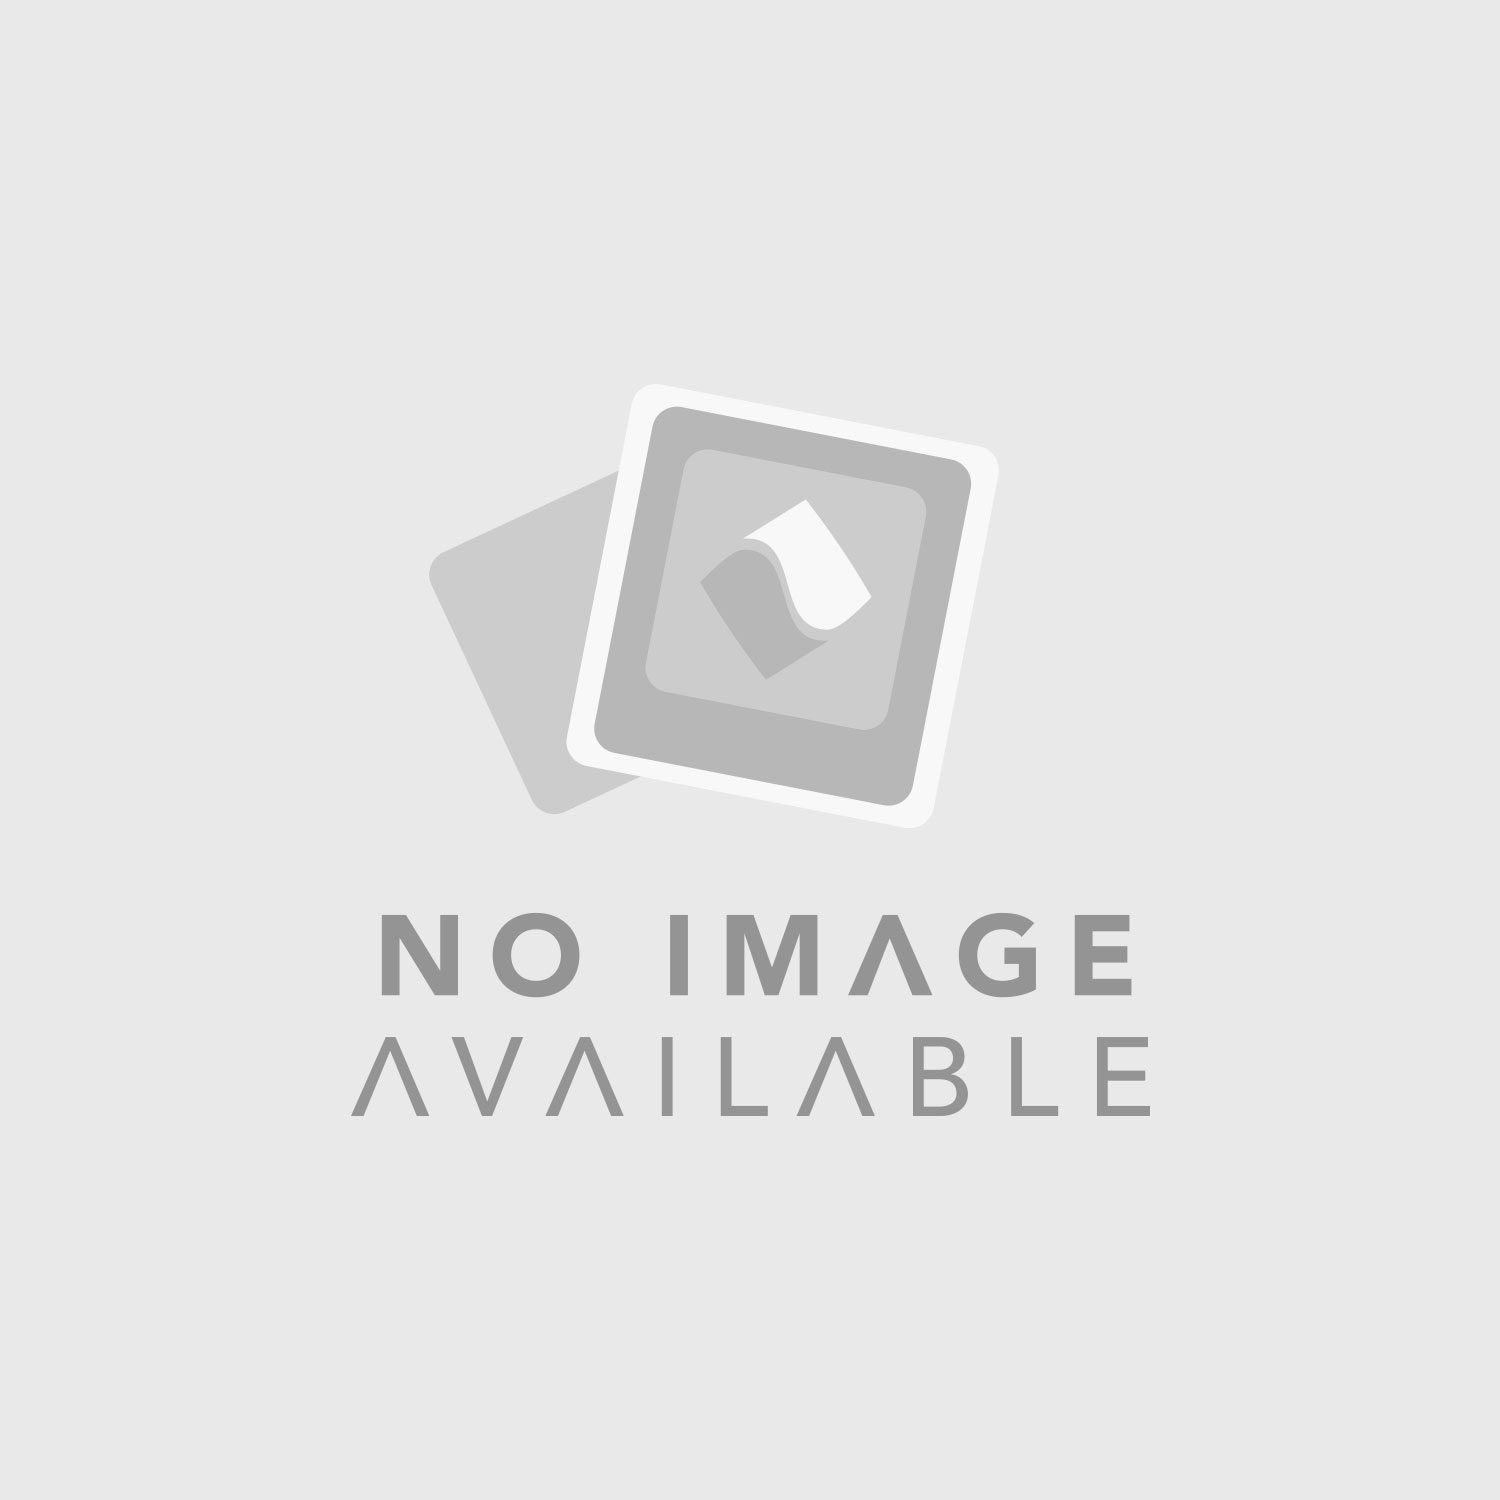 Rode RodeCaster Pro Ultimate 4 Guest Podcasting Bundle with PodMics (Compass Boom Arms)